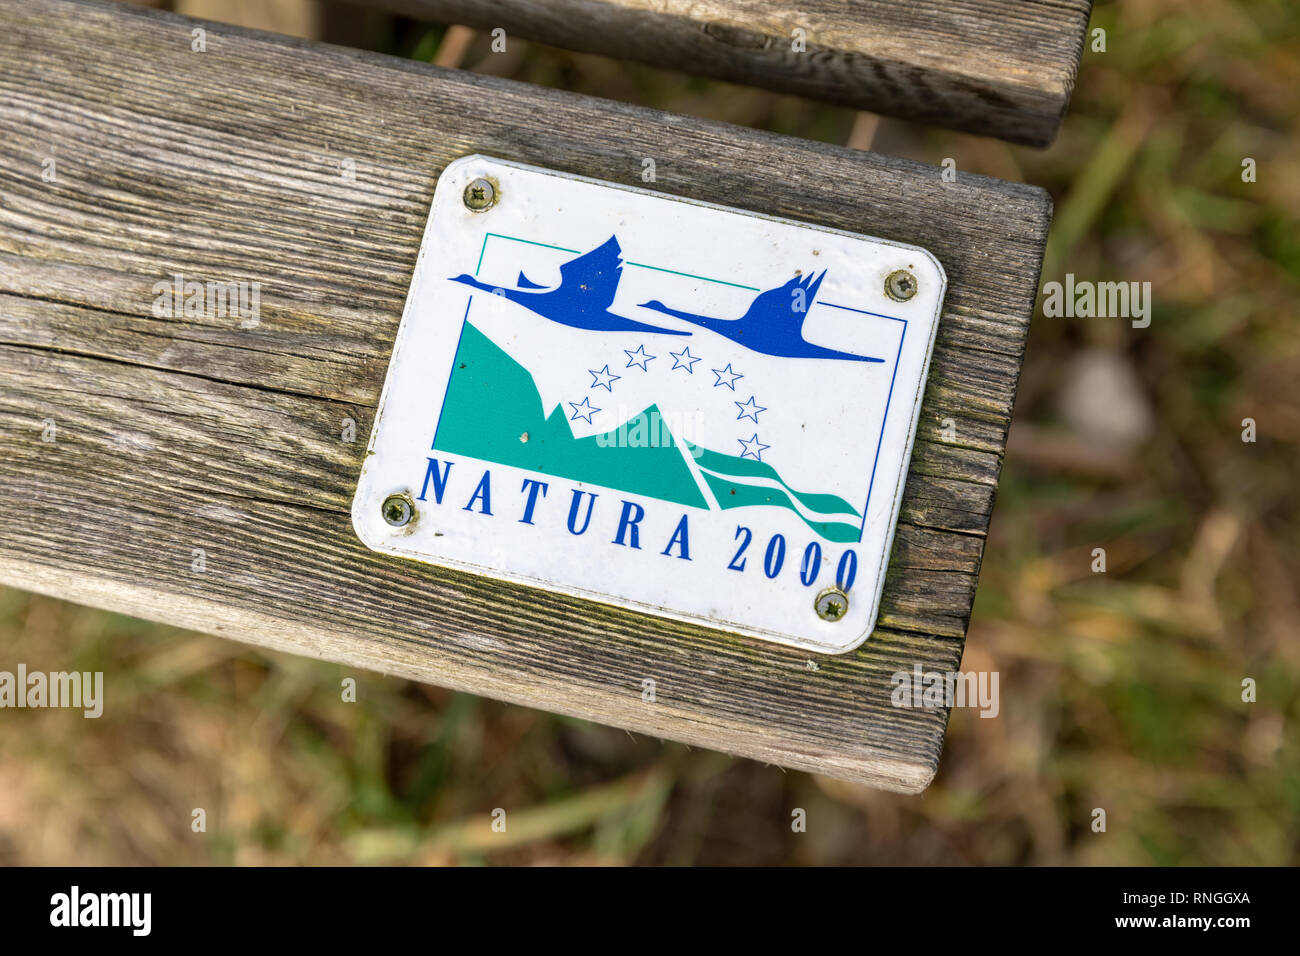 Natura 2000 sign on a wooden bench - Stock Image